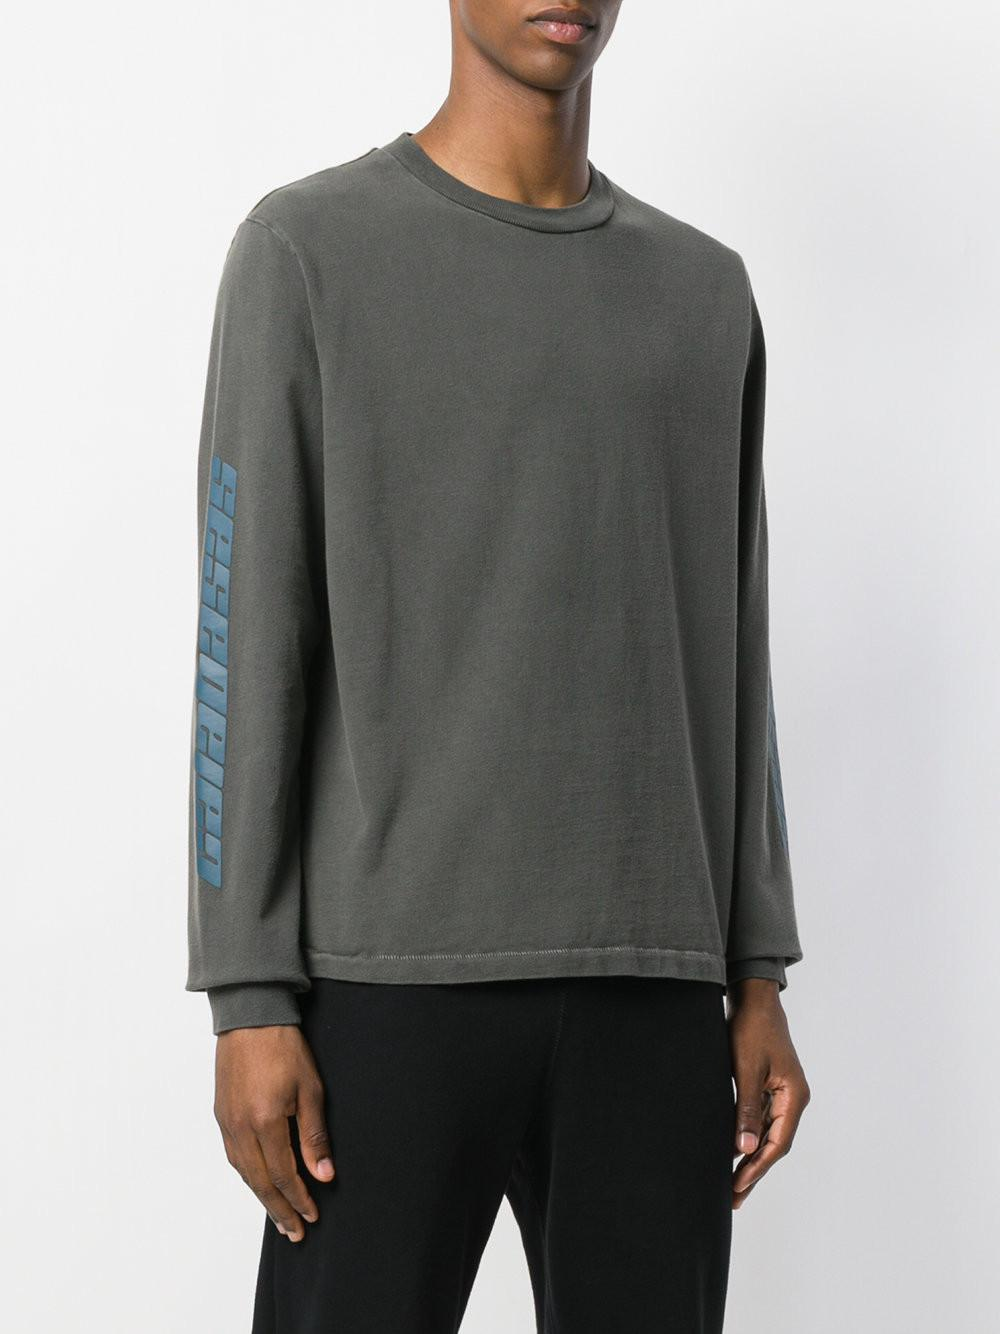 eff41650ccf399 Yeezy Season 6 Calabasas Long Sleeve T-shirt in Gray for Men - Lyst